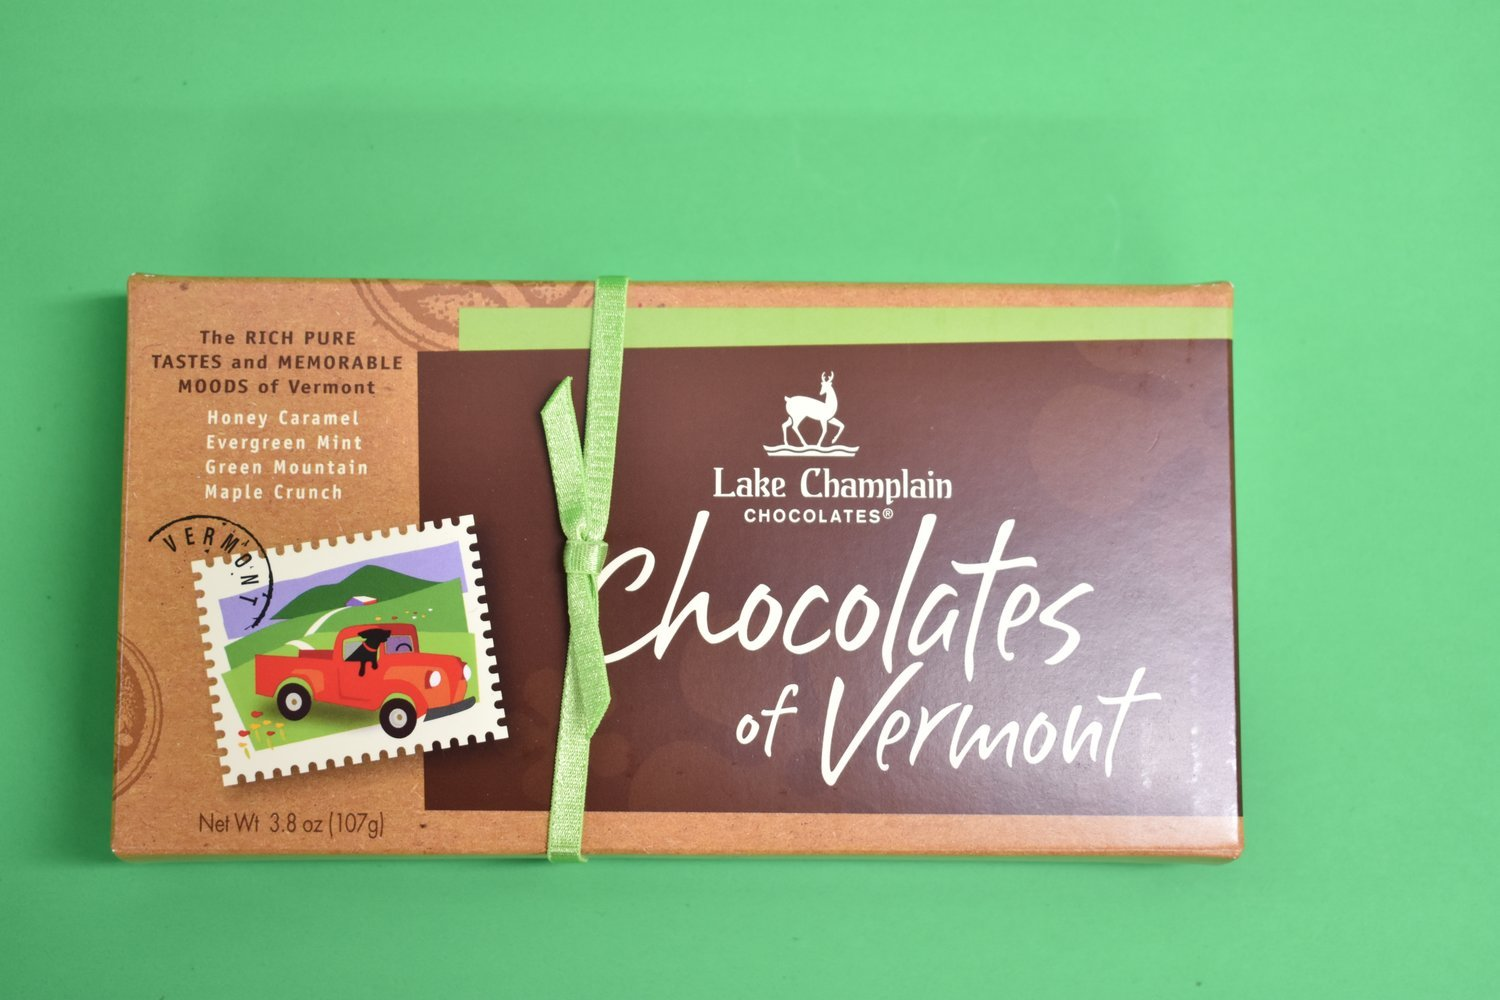 Chocolate of Vermont